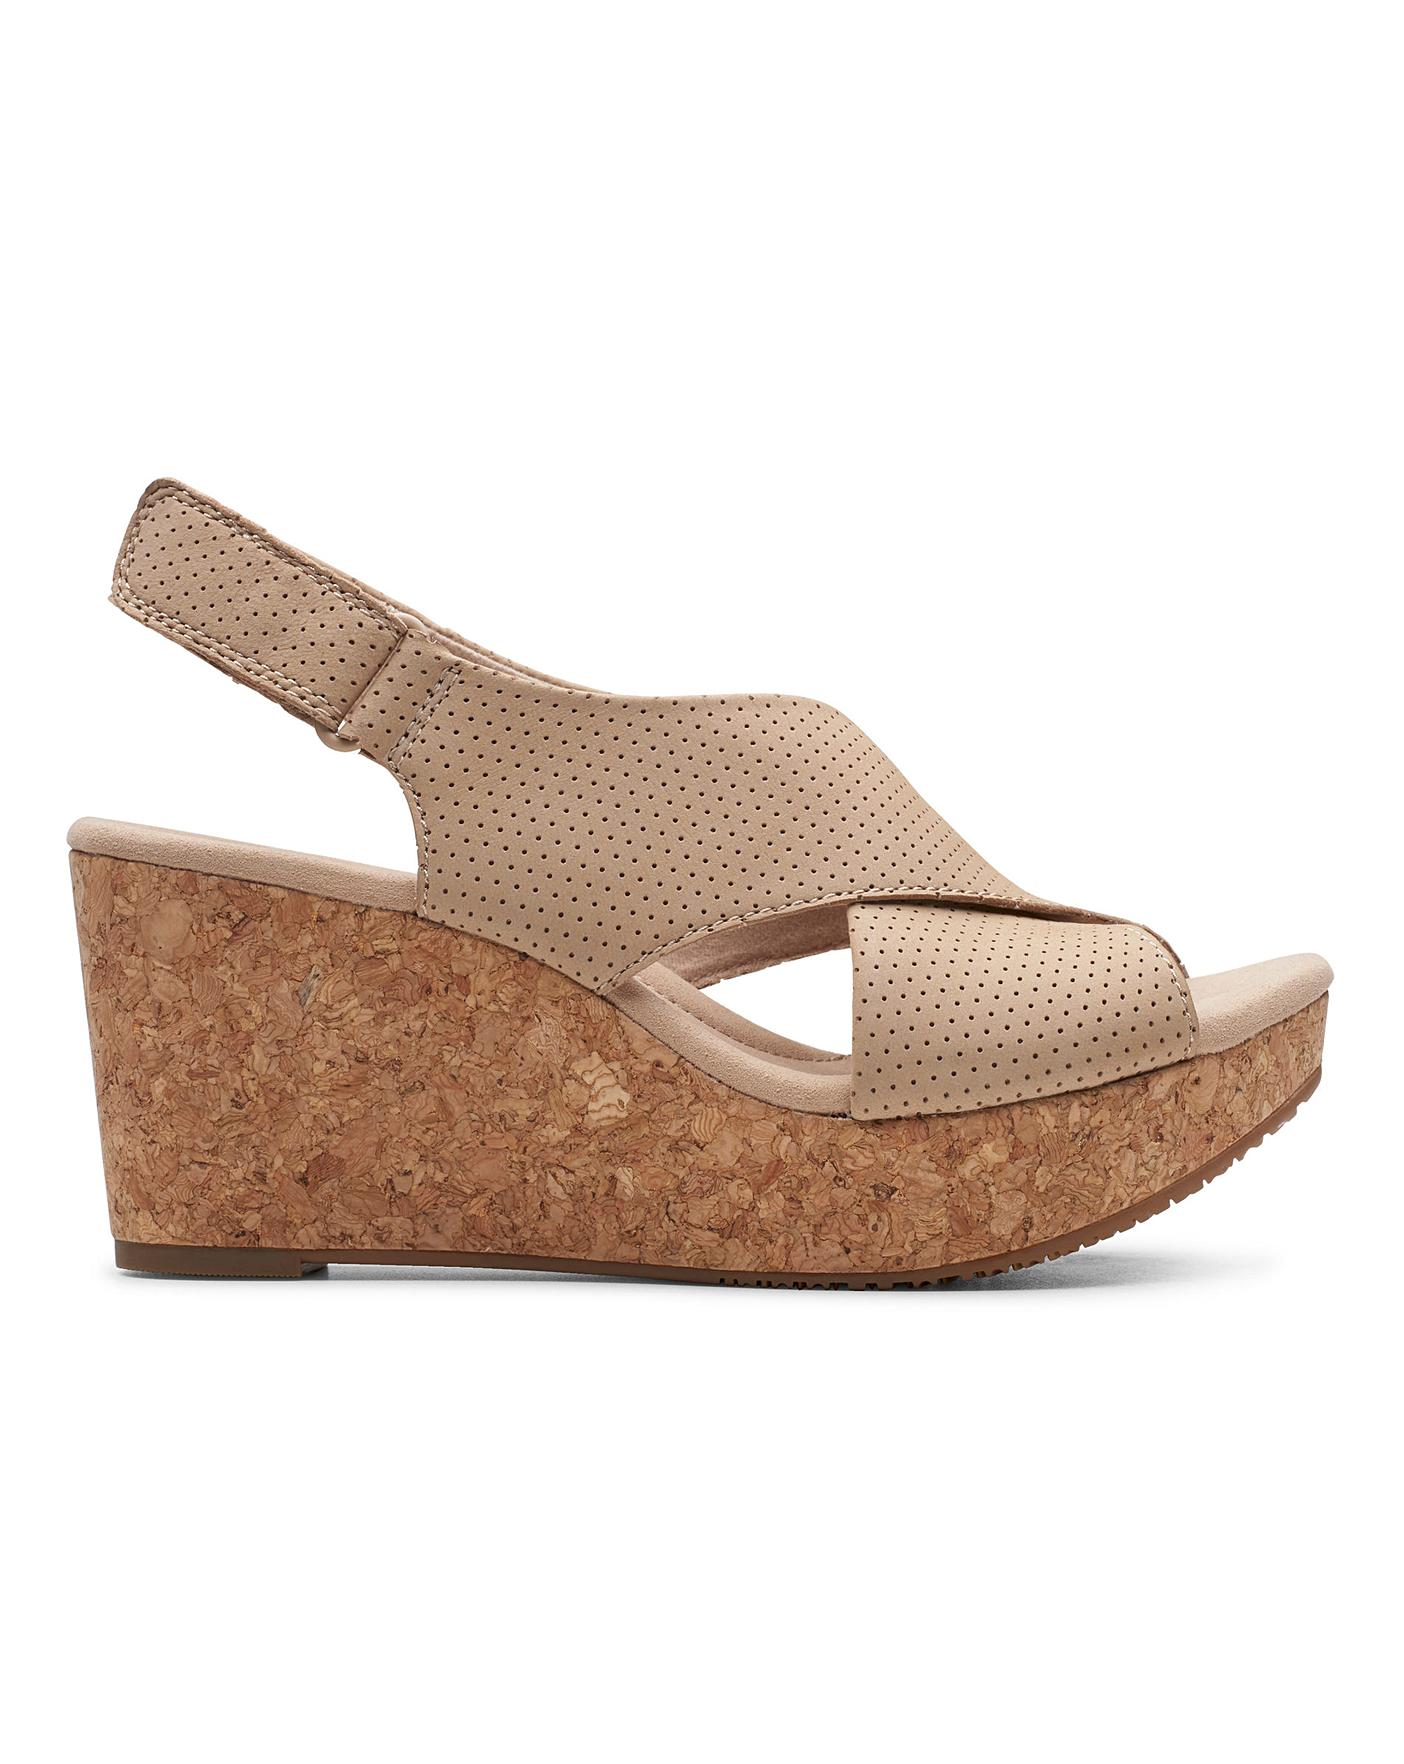 Clarks Wedge Sandals   Oxendales